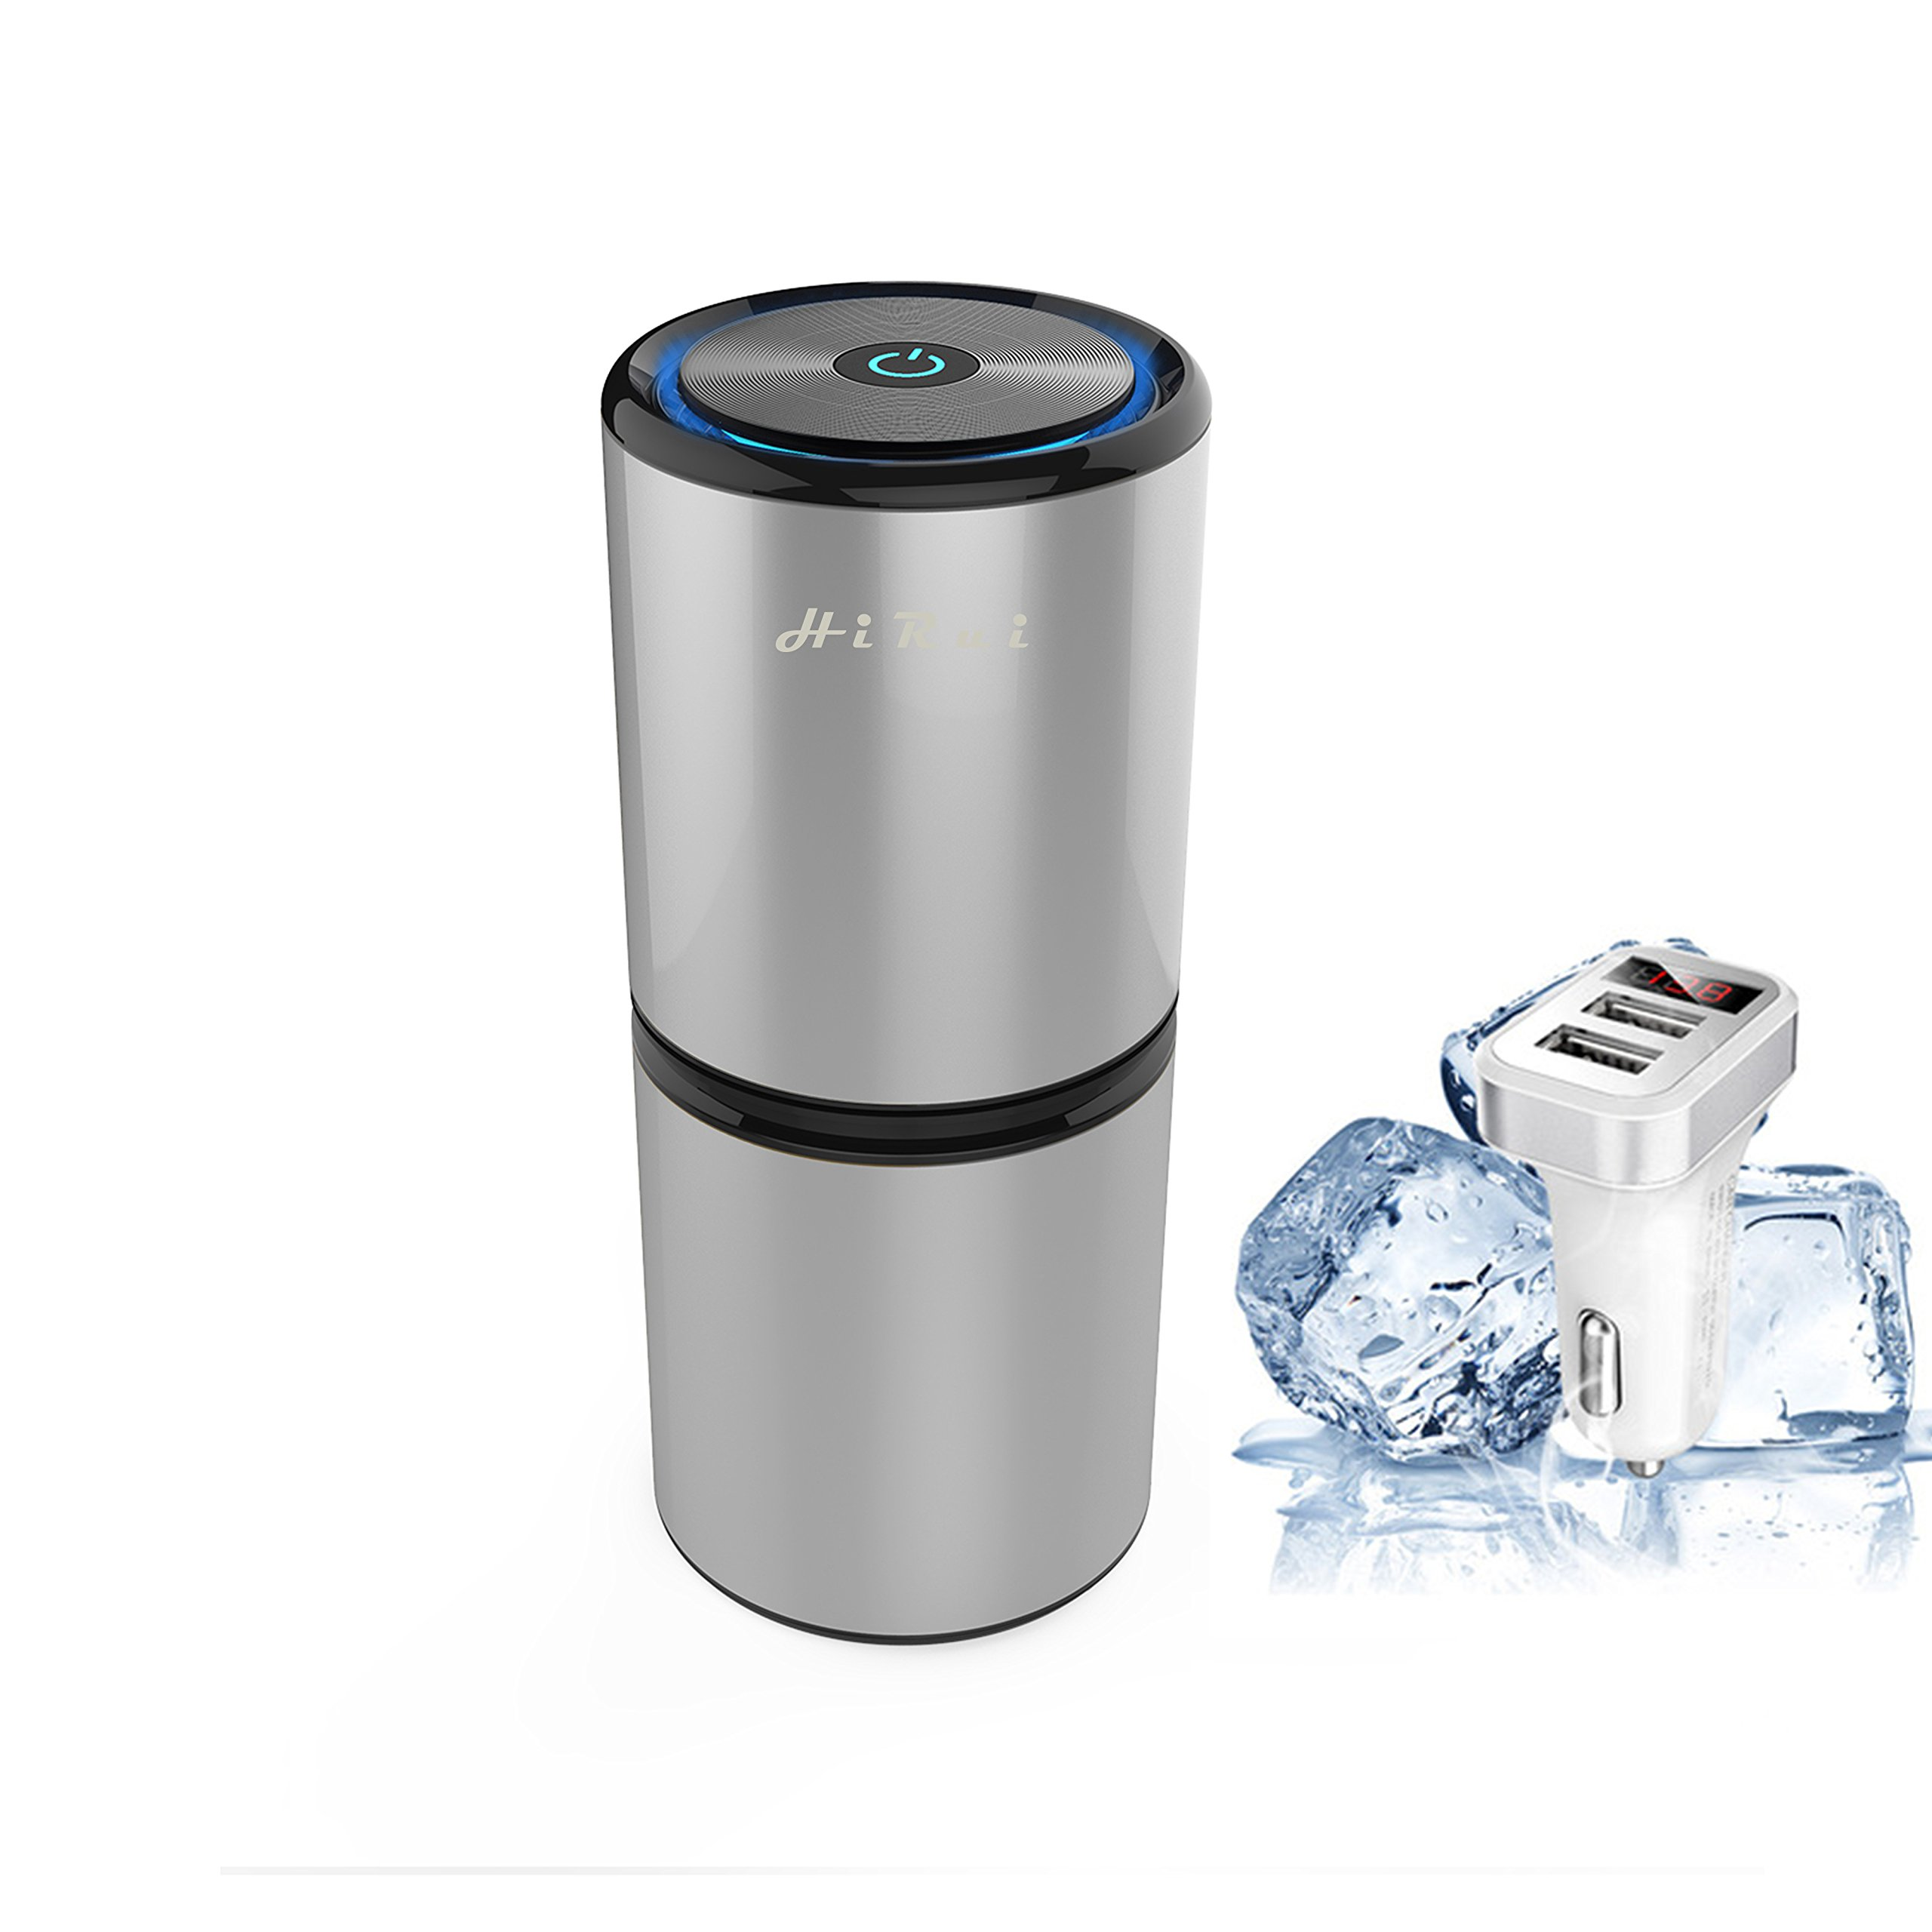 HiRui Car Ionizer Air Purifier Car Air Freshener Ionic Air Cleaner Release Anion   Best Odors Eliminator Remove Formaldehyde/Tobacco Smoke/PM 2.5/Dust - Available For Automobile and Small Room(Silver)